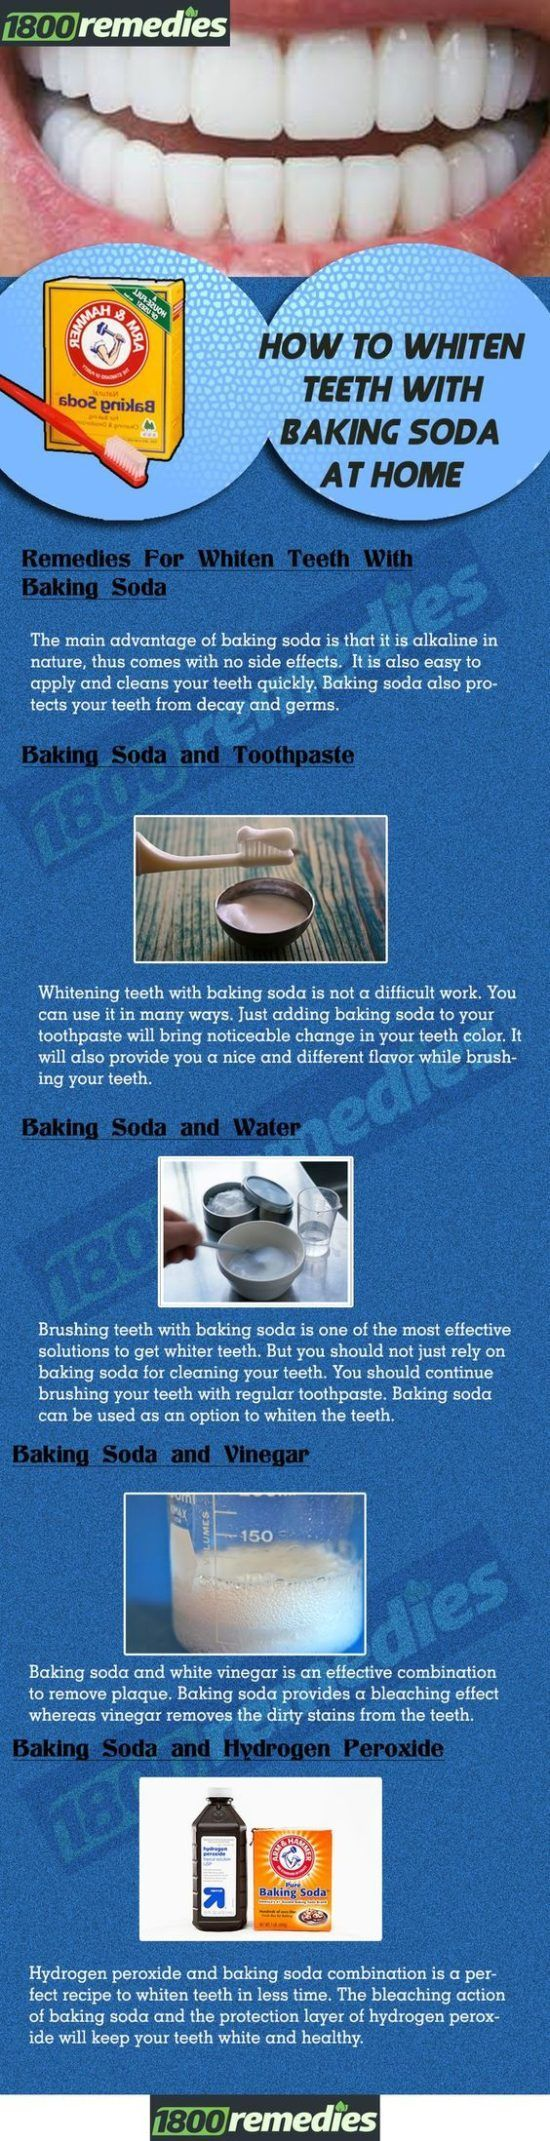 Colgate teeth whitening teeth whitening products pinterest teeth - How To Whiten Teeth With Baking Soda At Home